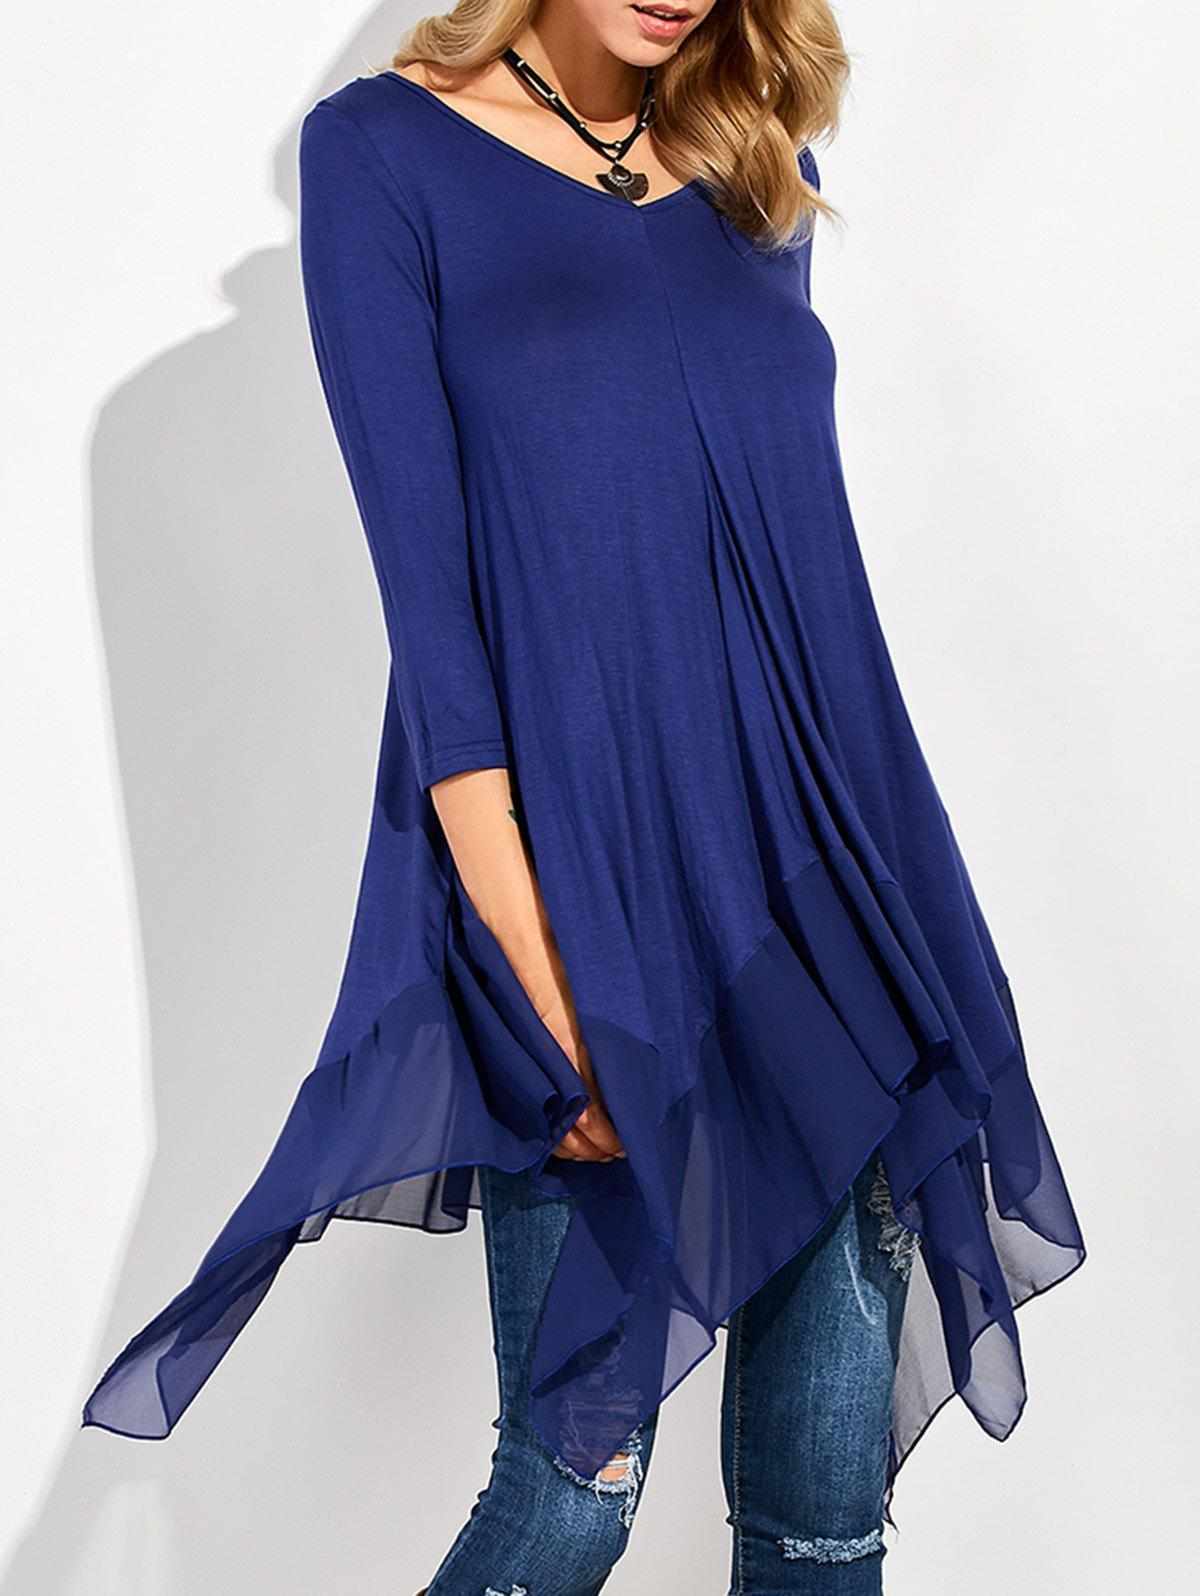 Long Sleeve Asymmetrical Handkerchief Long T-ShirtWOMEN<br><br>Size: XL; Color: BLUE; Material: Cotton Blends,Polyester; Shirt Length: Long; Sleeve Length: Three Quarter; Collar: V-Neck; Style: Fashion; Season: Fall,Spring; Embellishment: Spliced; Pattern Type: Solid; Weight: 0.274kg; Package Contents: 1 x T-Shirt;